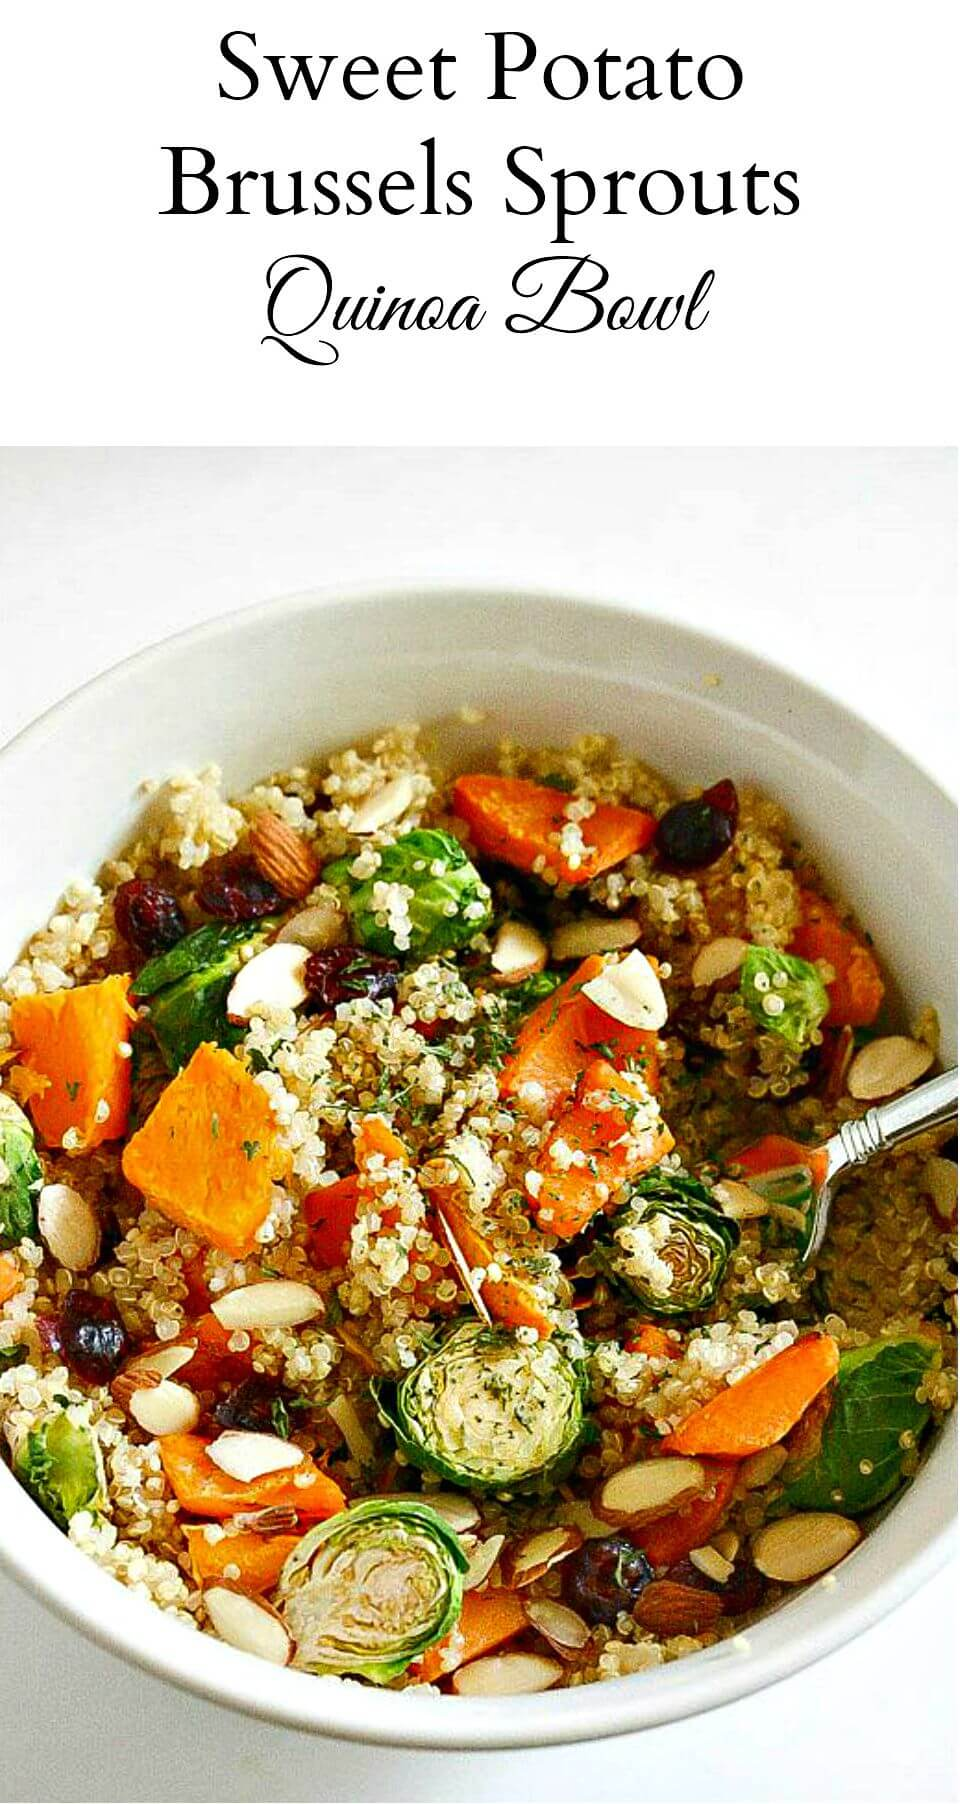 Sweet Potato Brussels Sprouts Quinoa Bowl